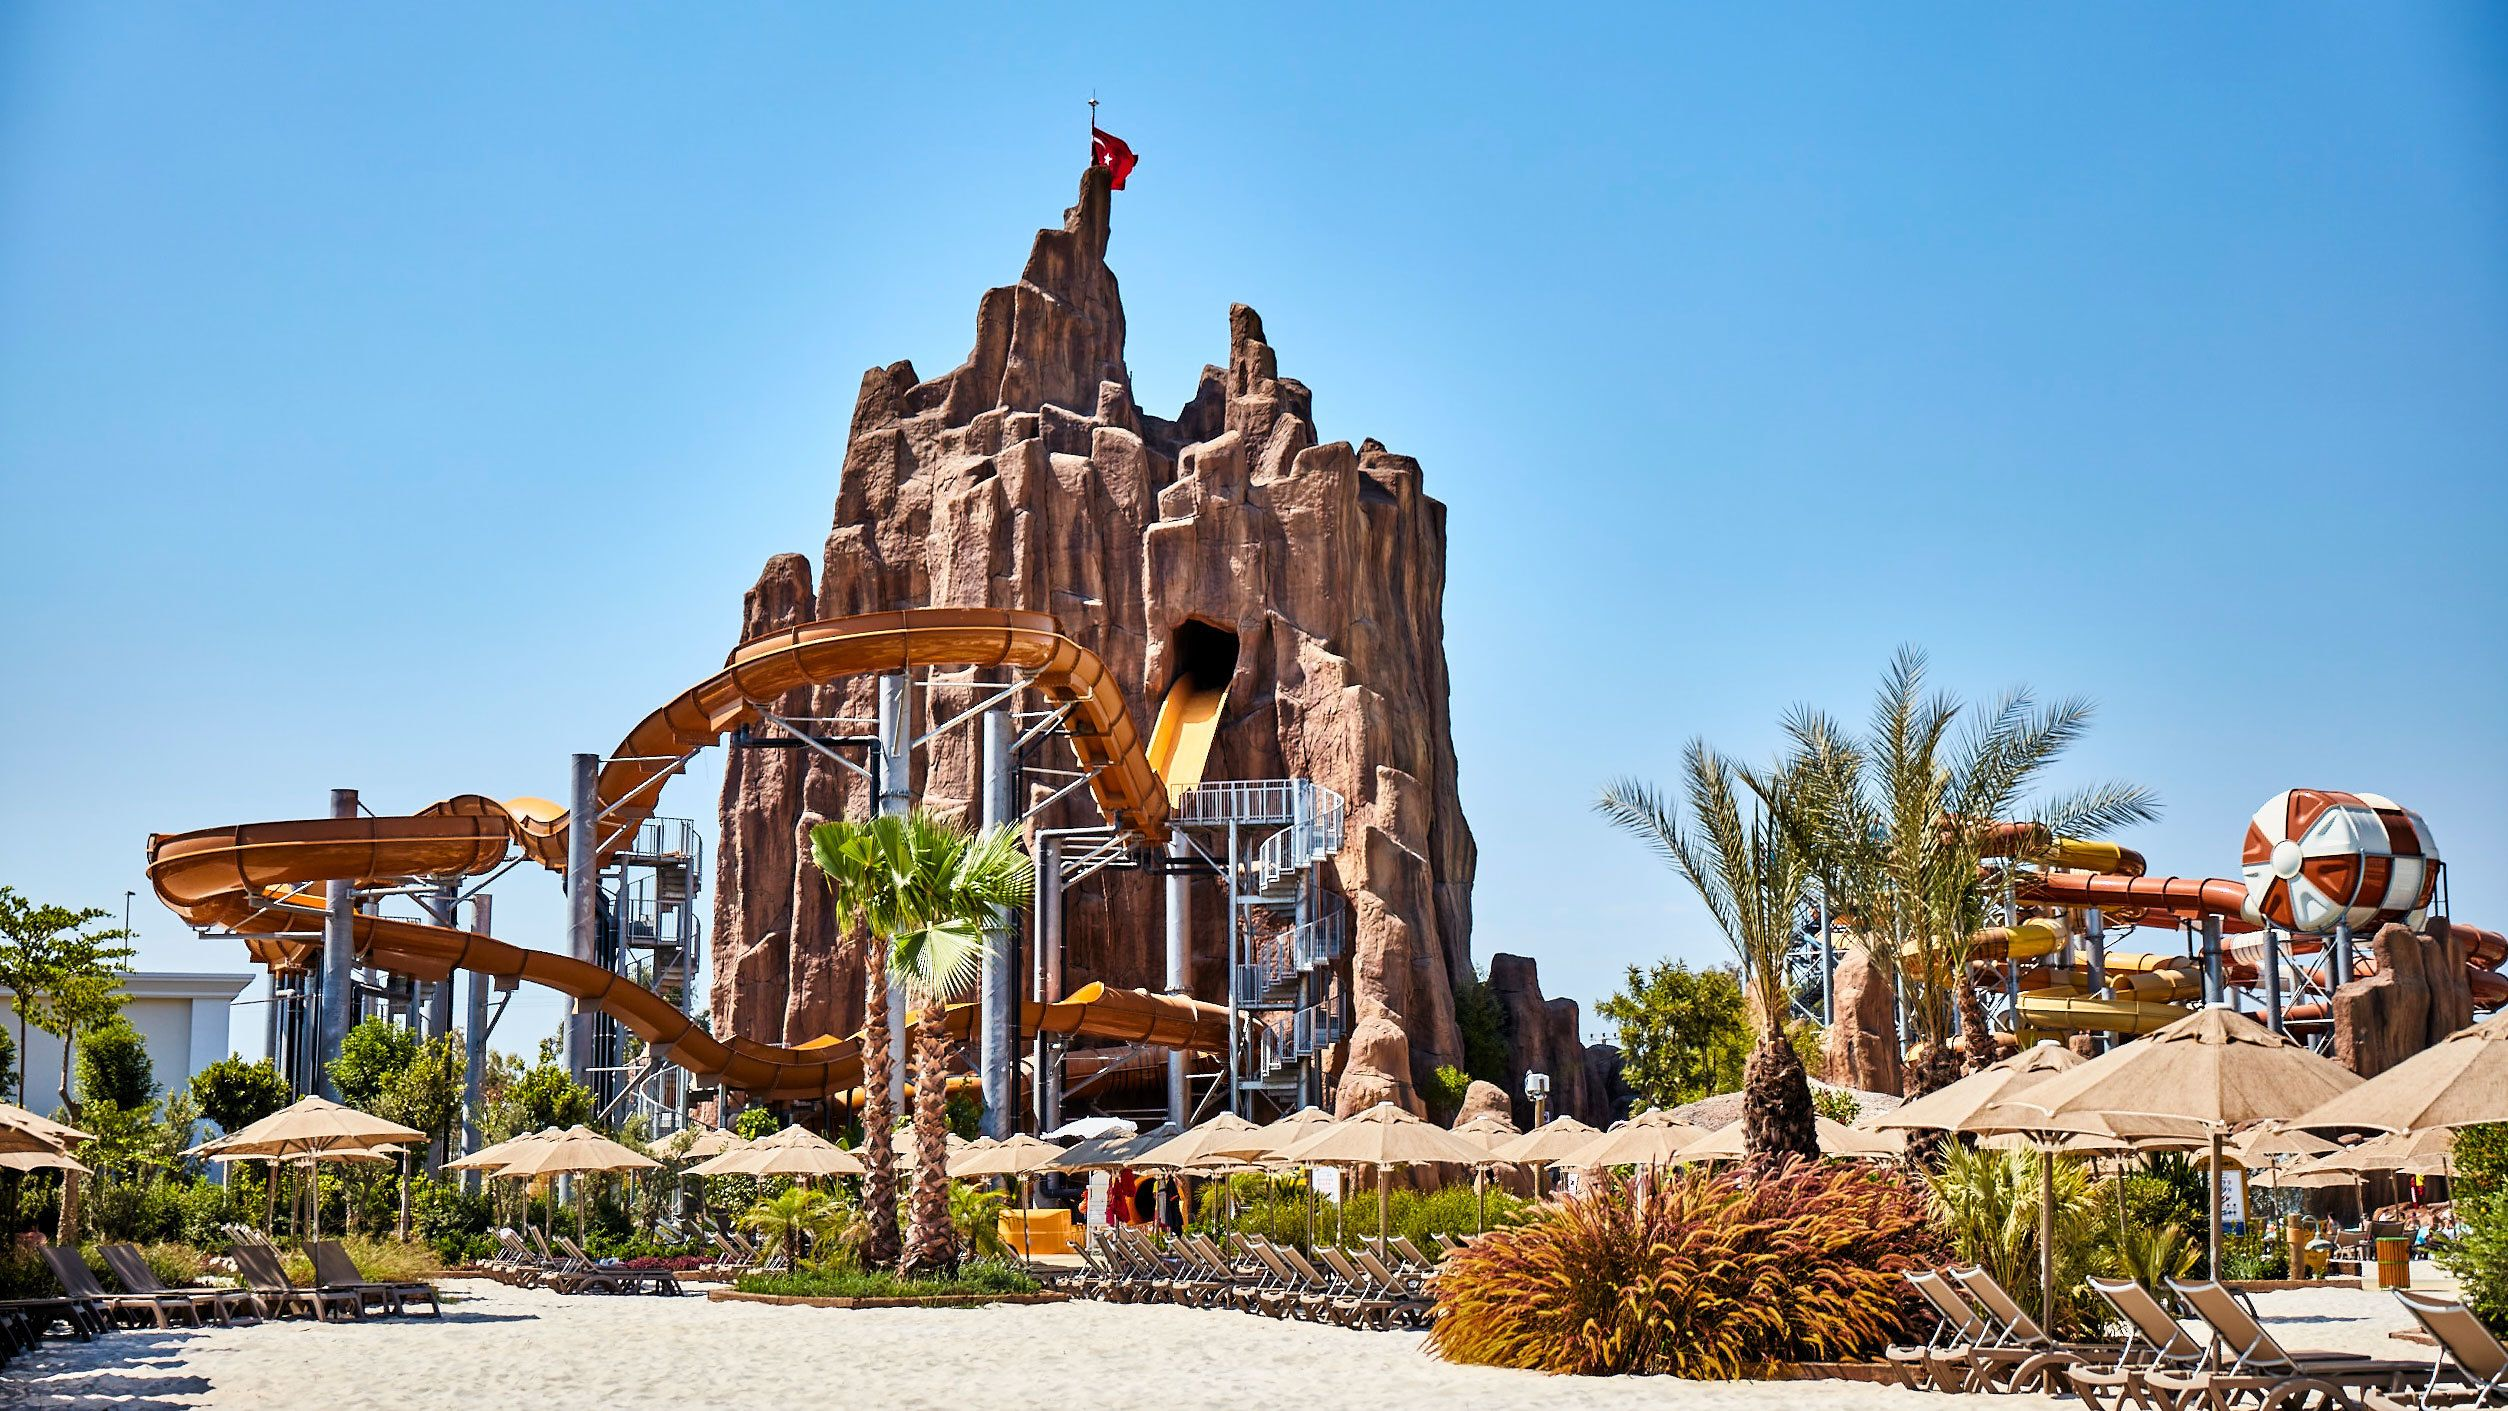 Tower falls attraction at Land of Legends theme park in Antalya